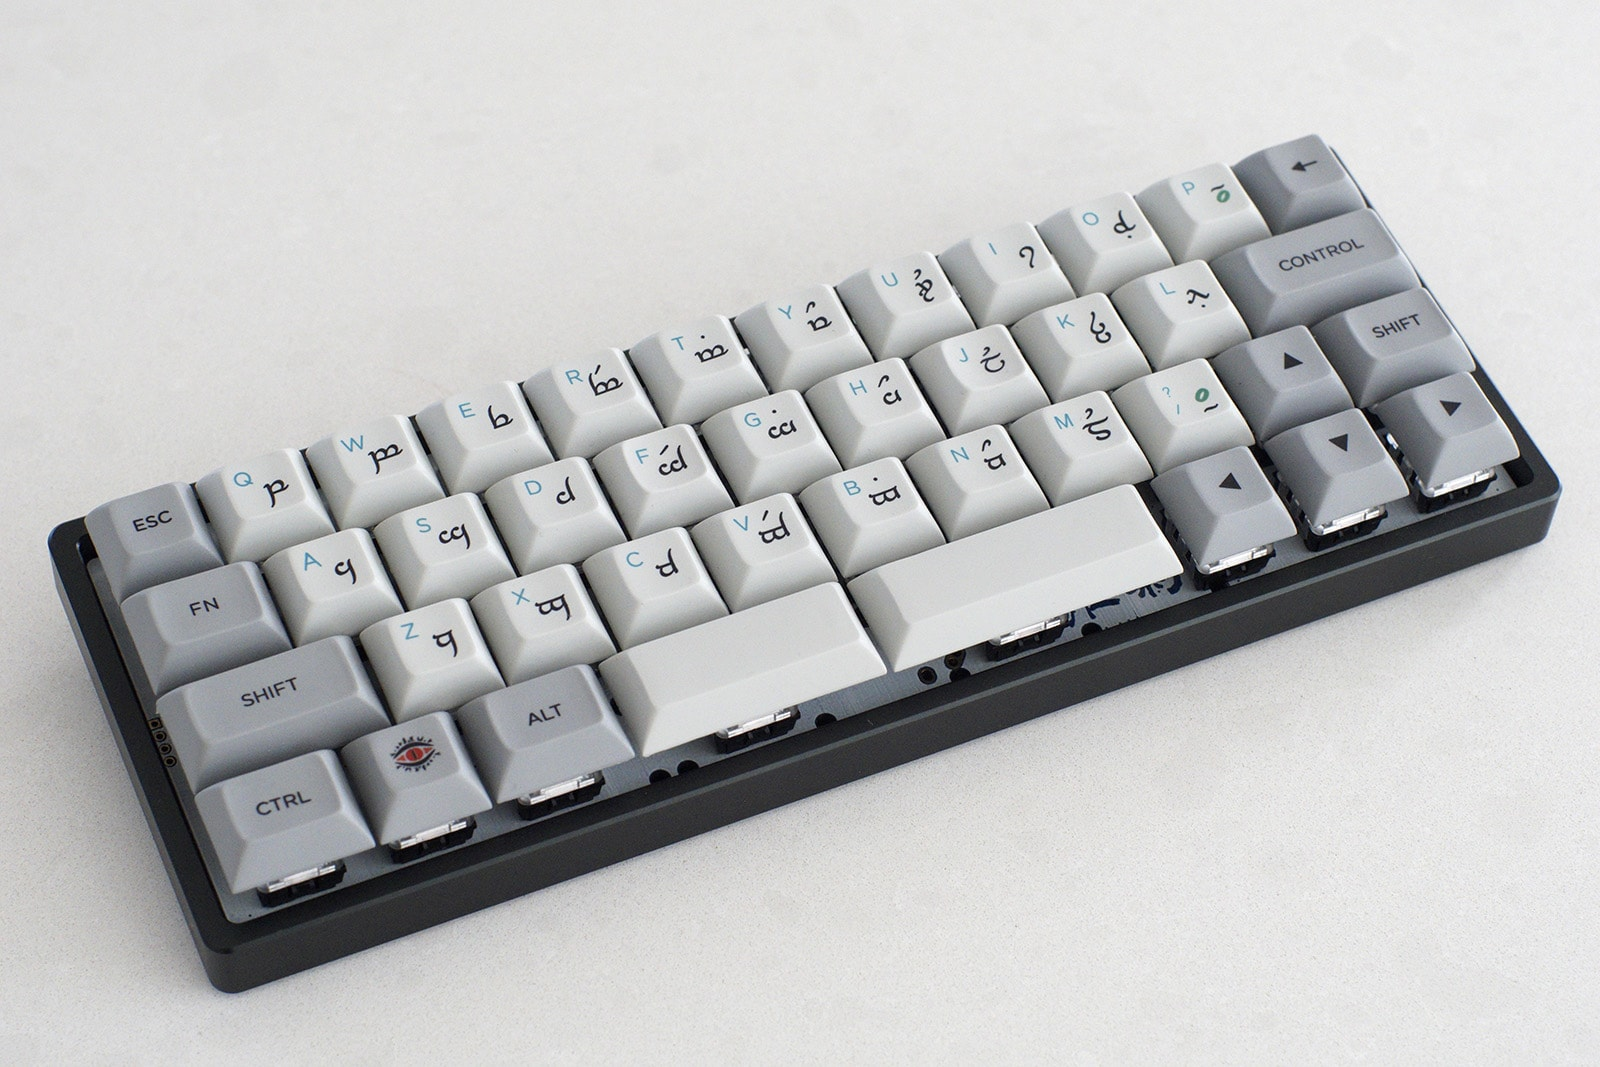 40% keyboard size example